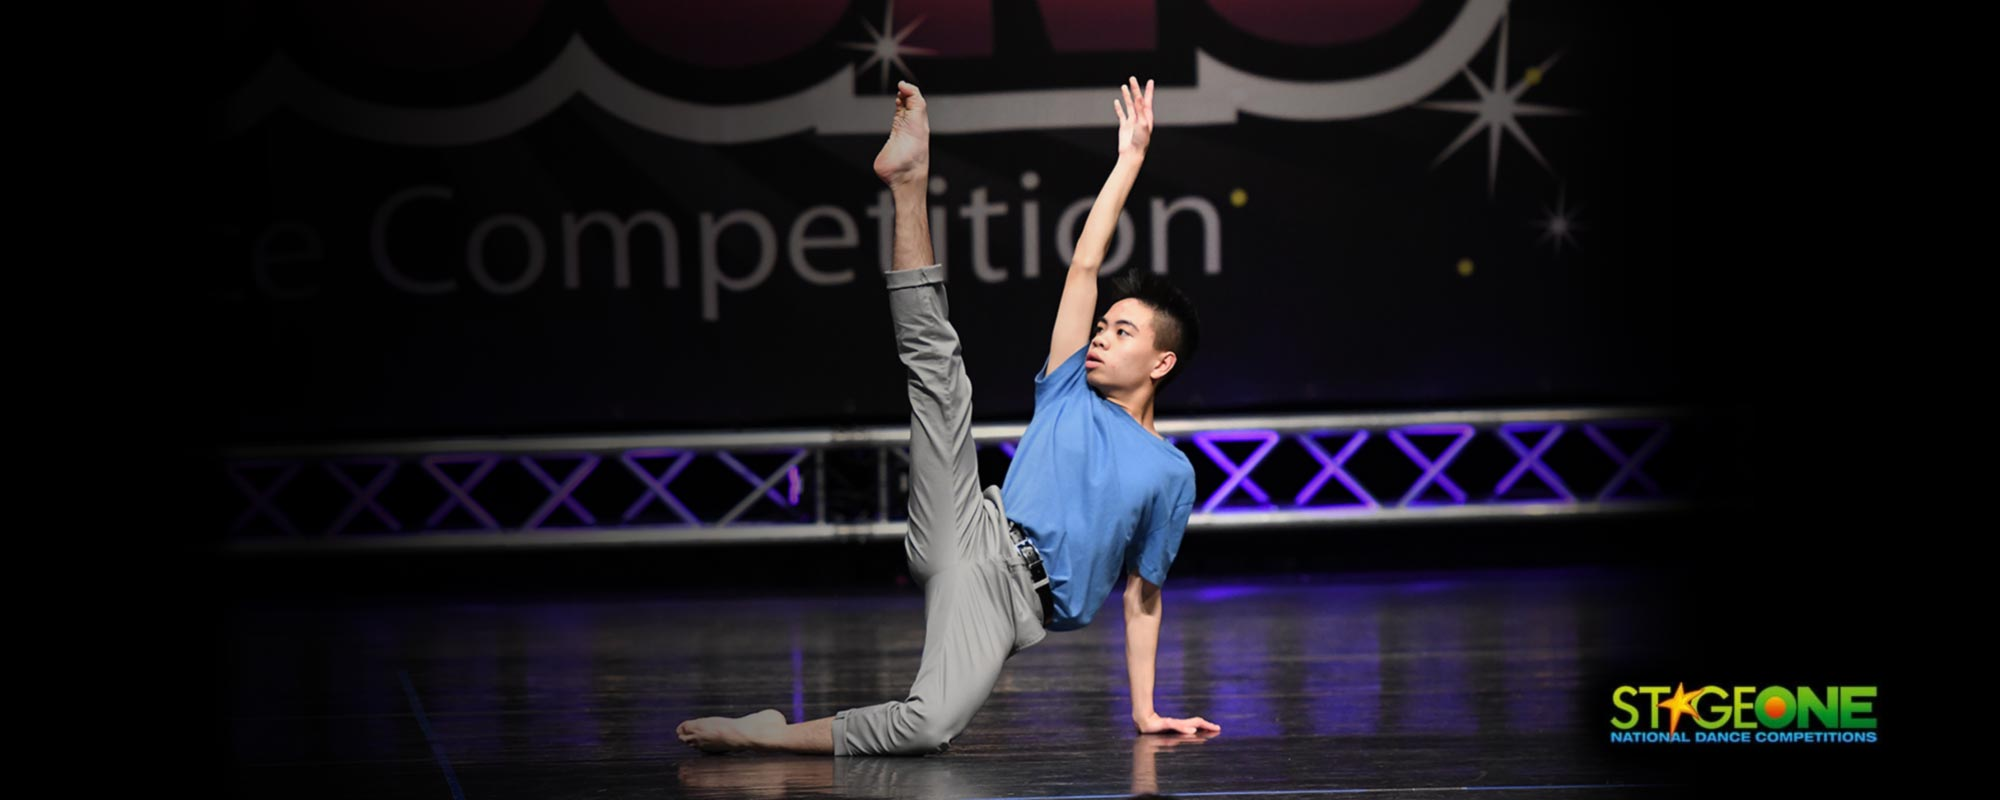 Stage One National Dance Competitions